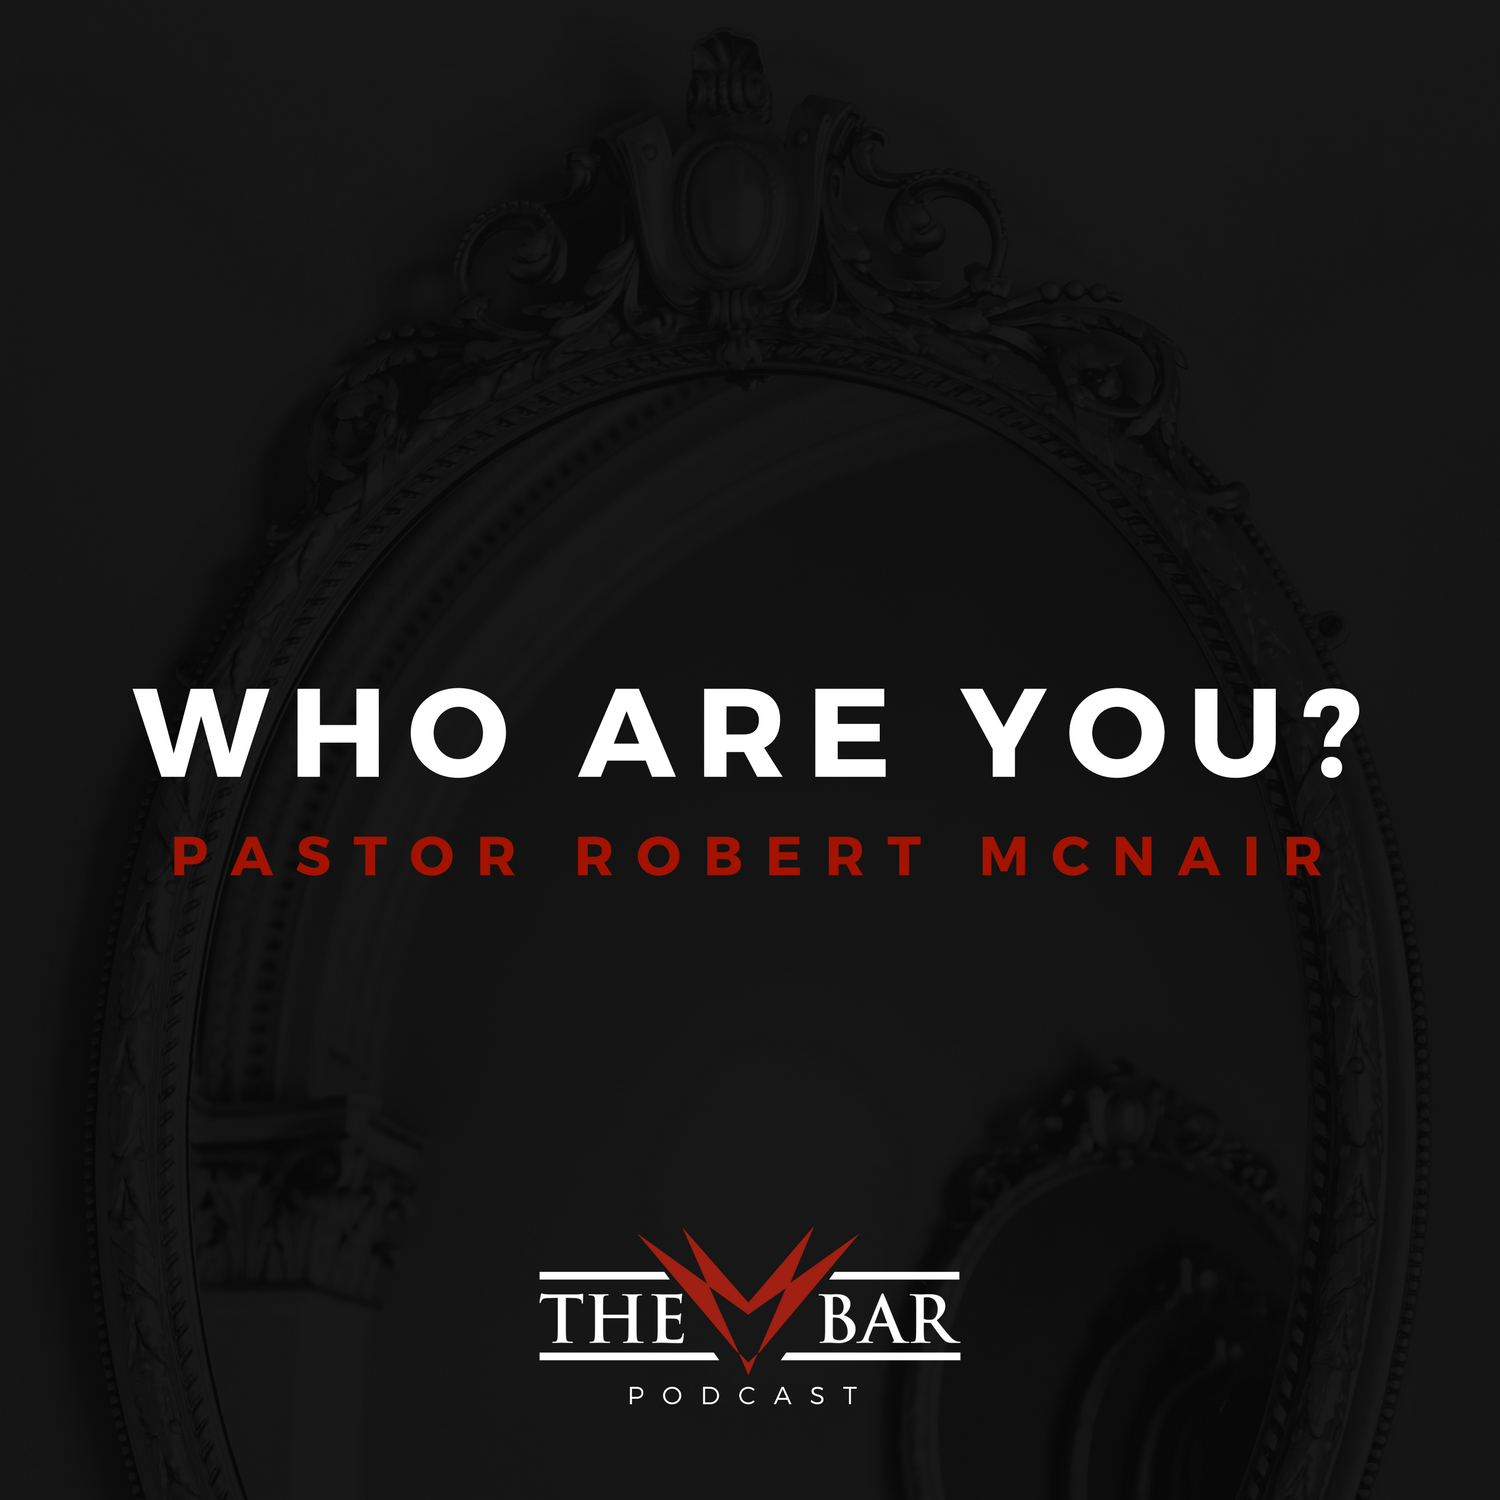 The BAR Podcat - Who Are You